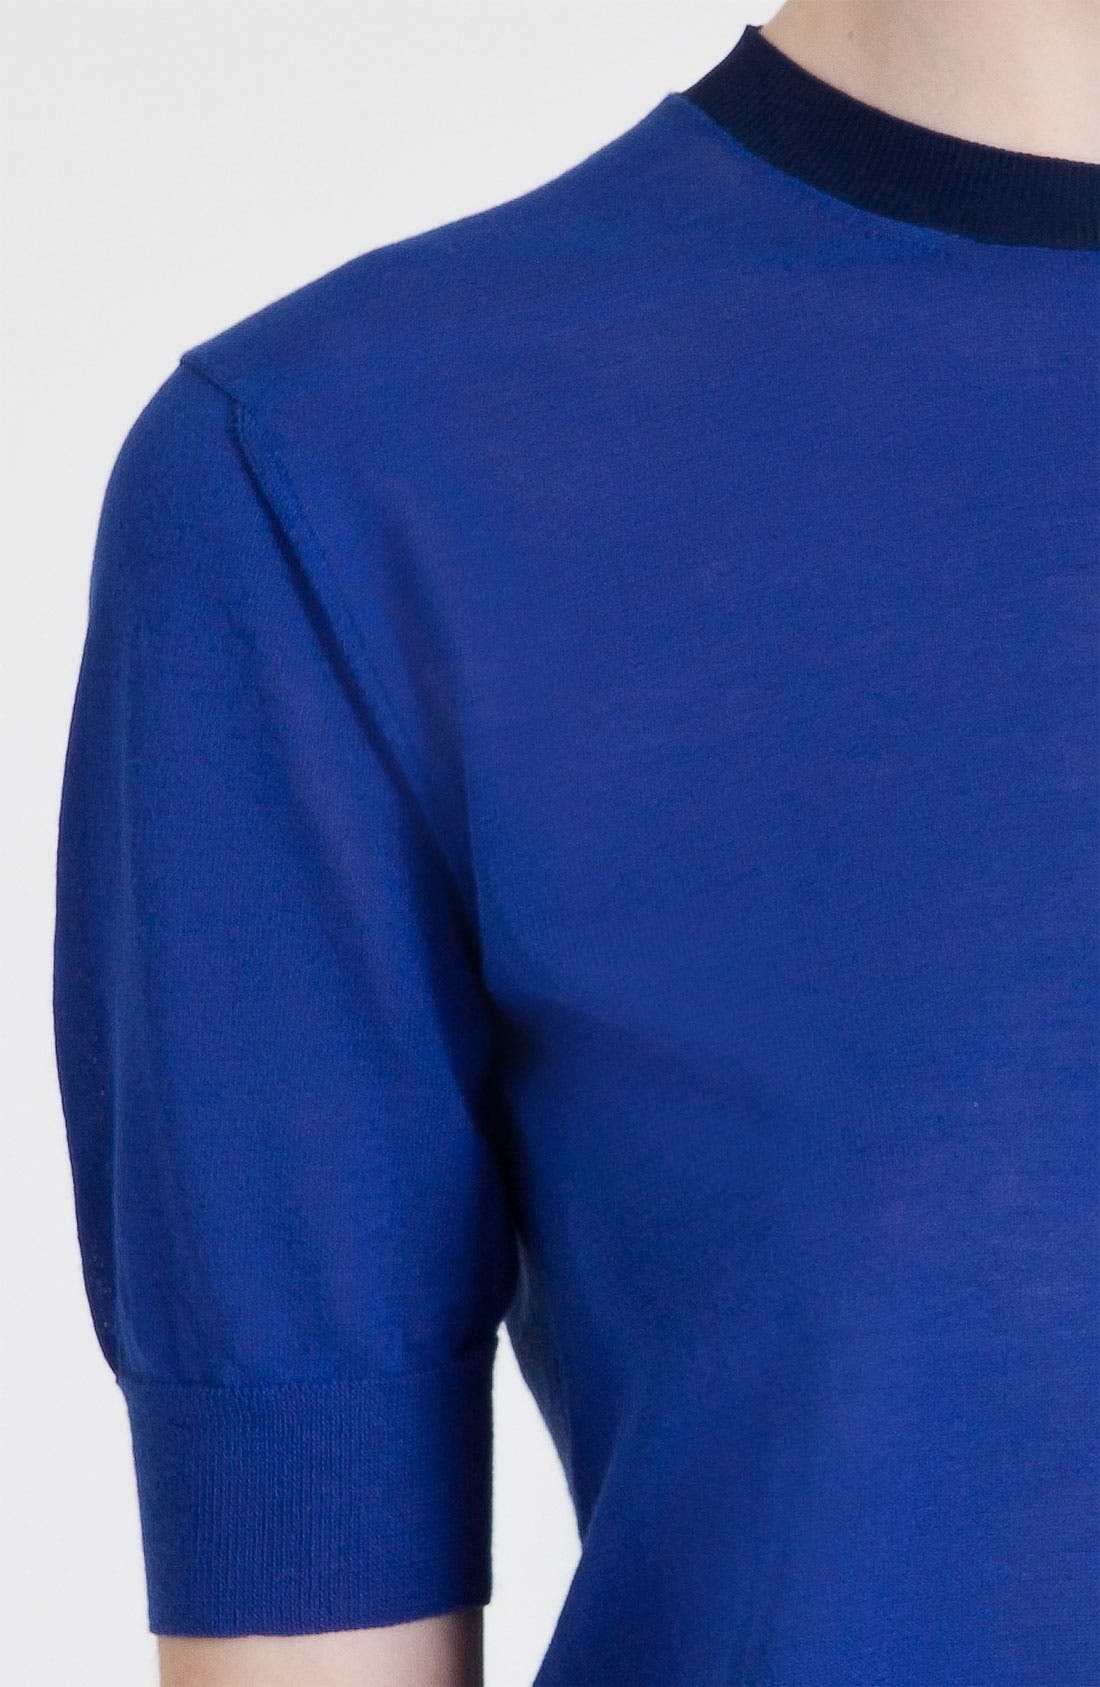 Bicolor Sweater,                             Alternate thumbnail 2, color,                             410